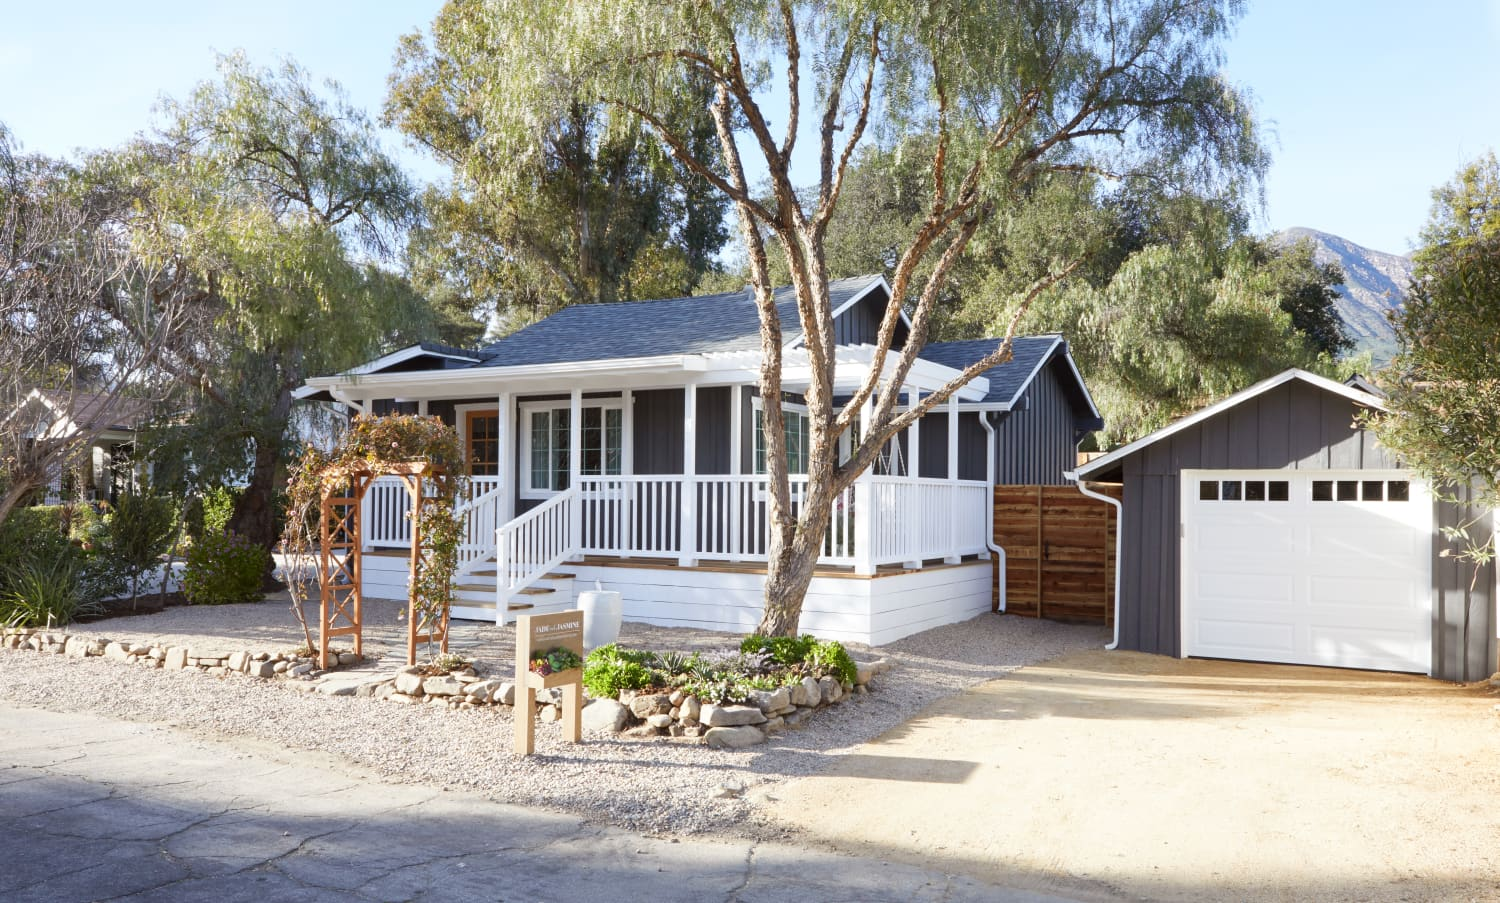 Look Inside: This $800K California Cottage Comes with a Dreamy Writer's Studio